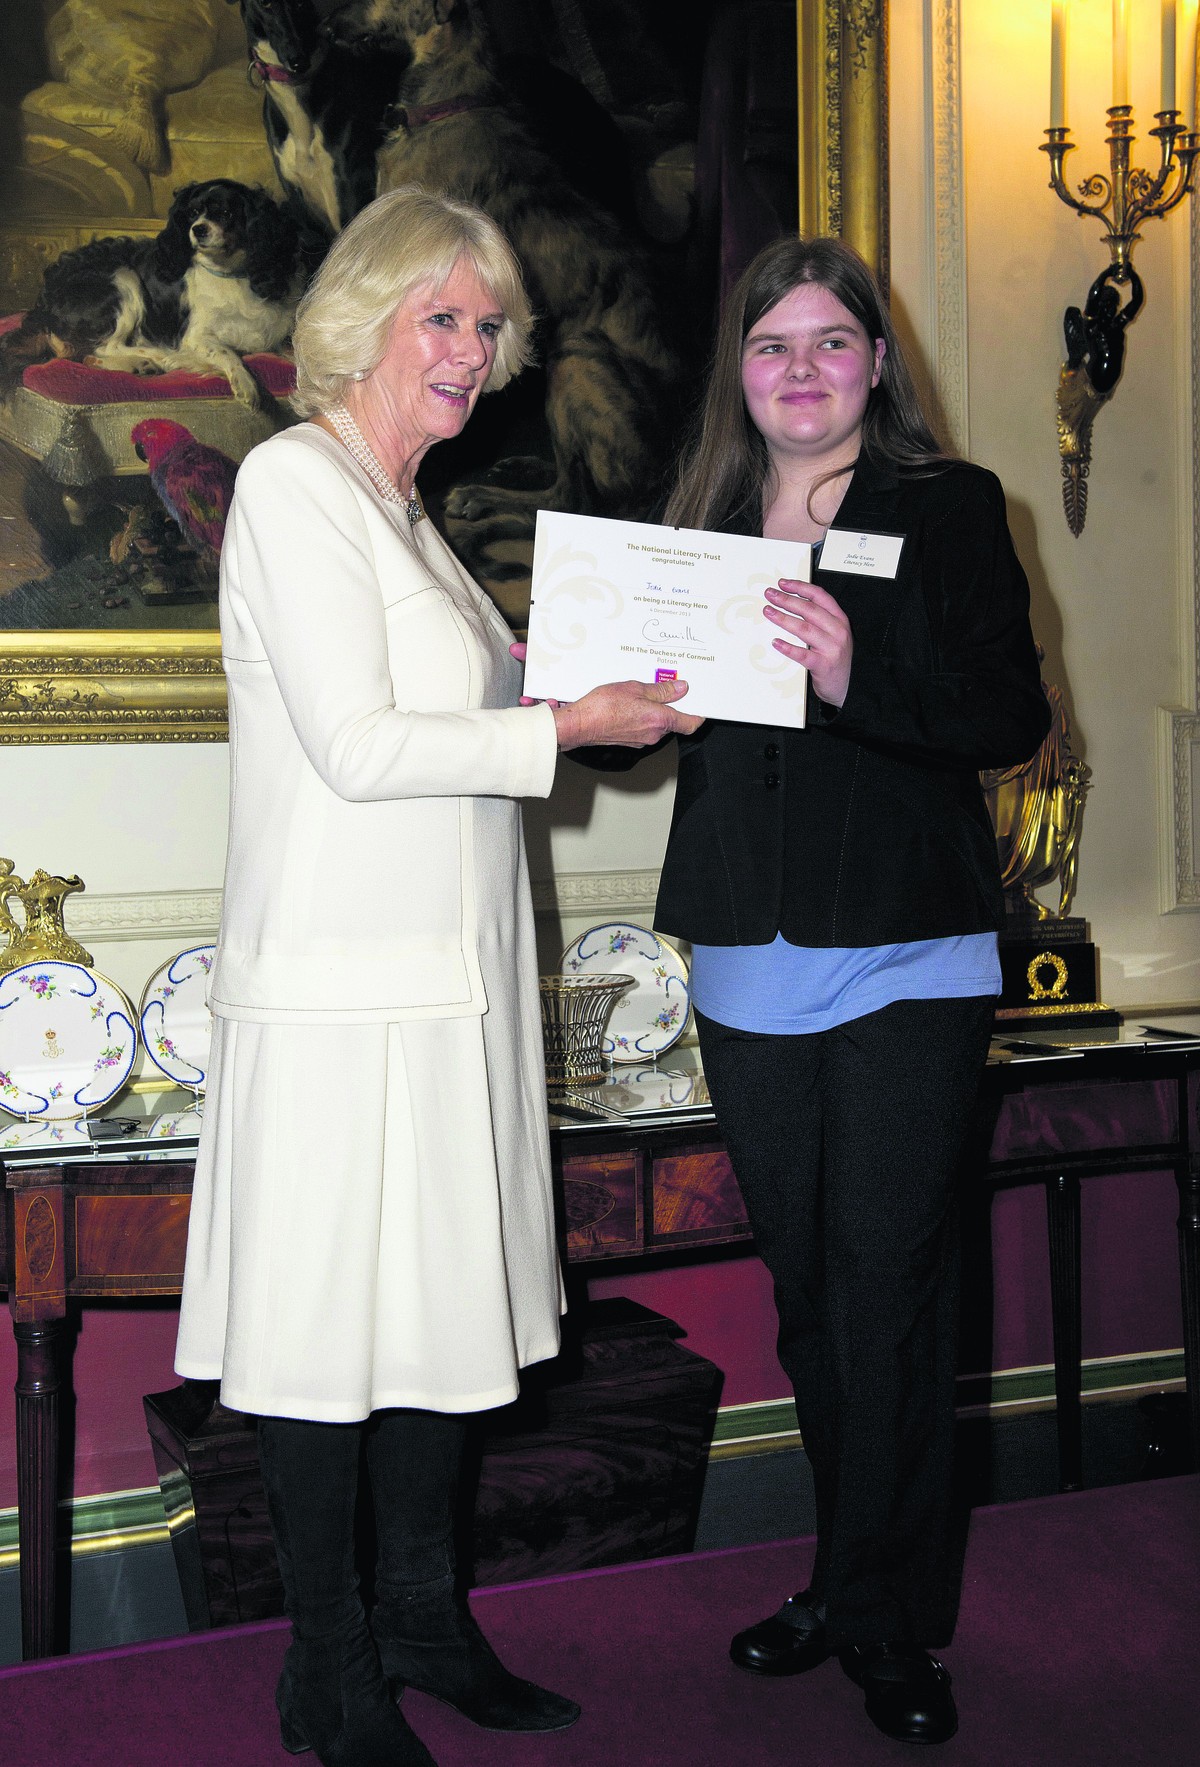 WELL DESERVED: The Duchess of Cornwall presents Jodie Evans with her Literacy Award at Clarence House, London on Wednesday